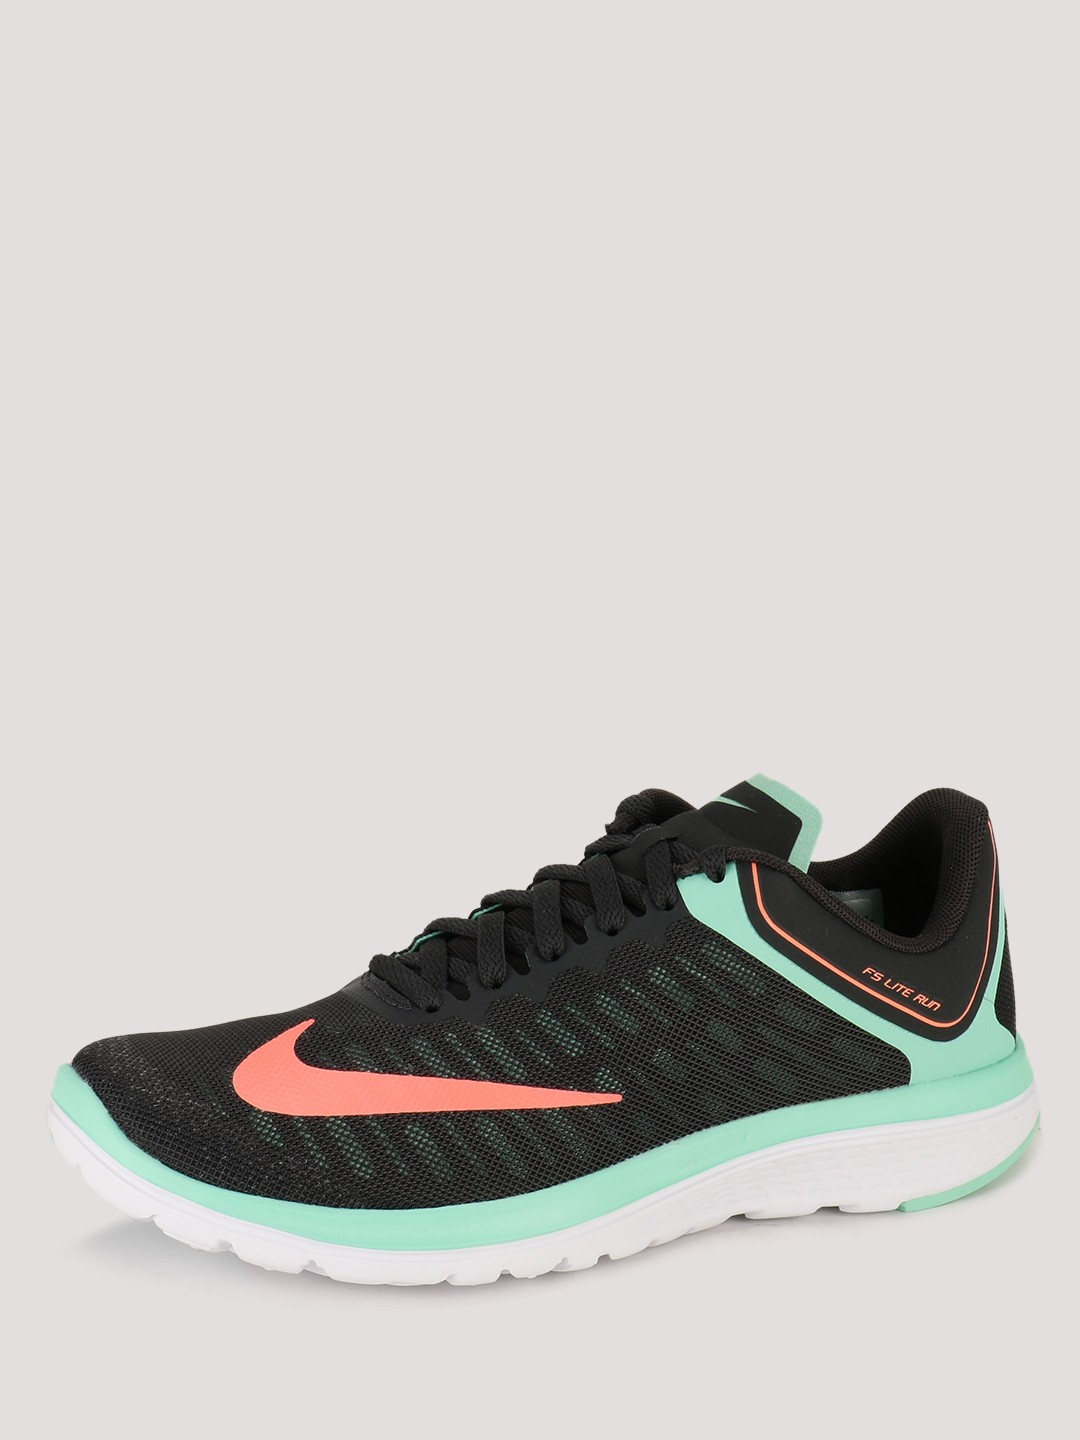 Nike FS Lite Run 3 Women's Running Shoes Kohl's Aha Produktion